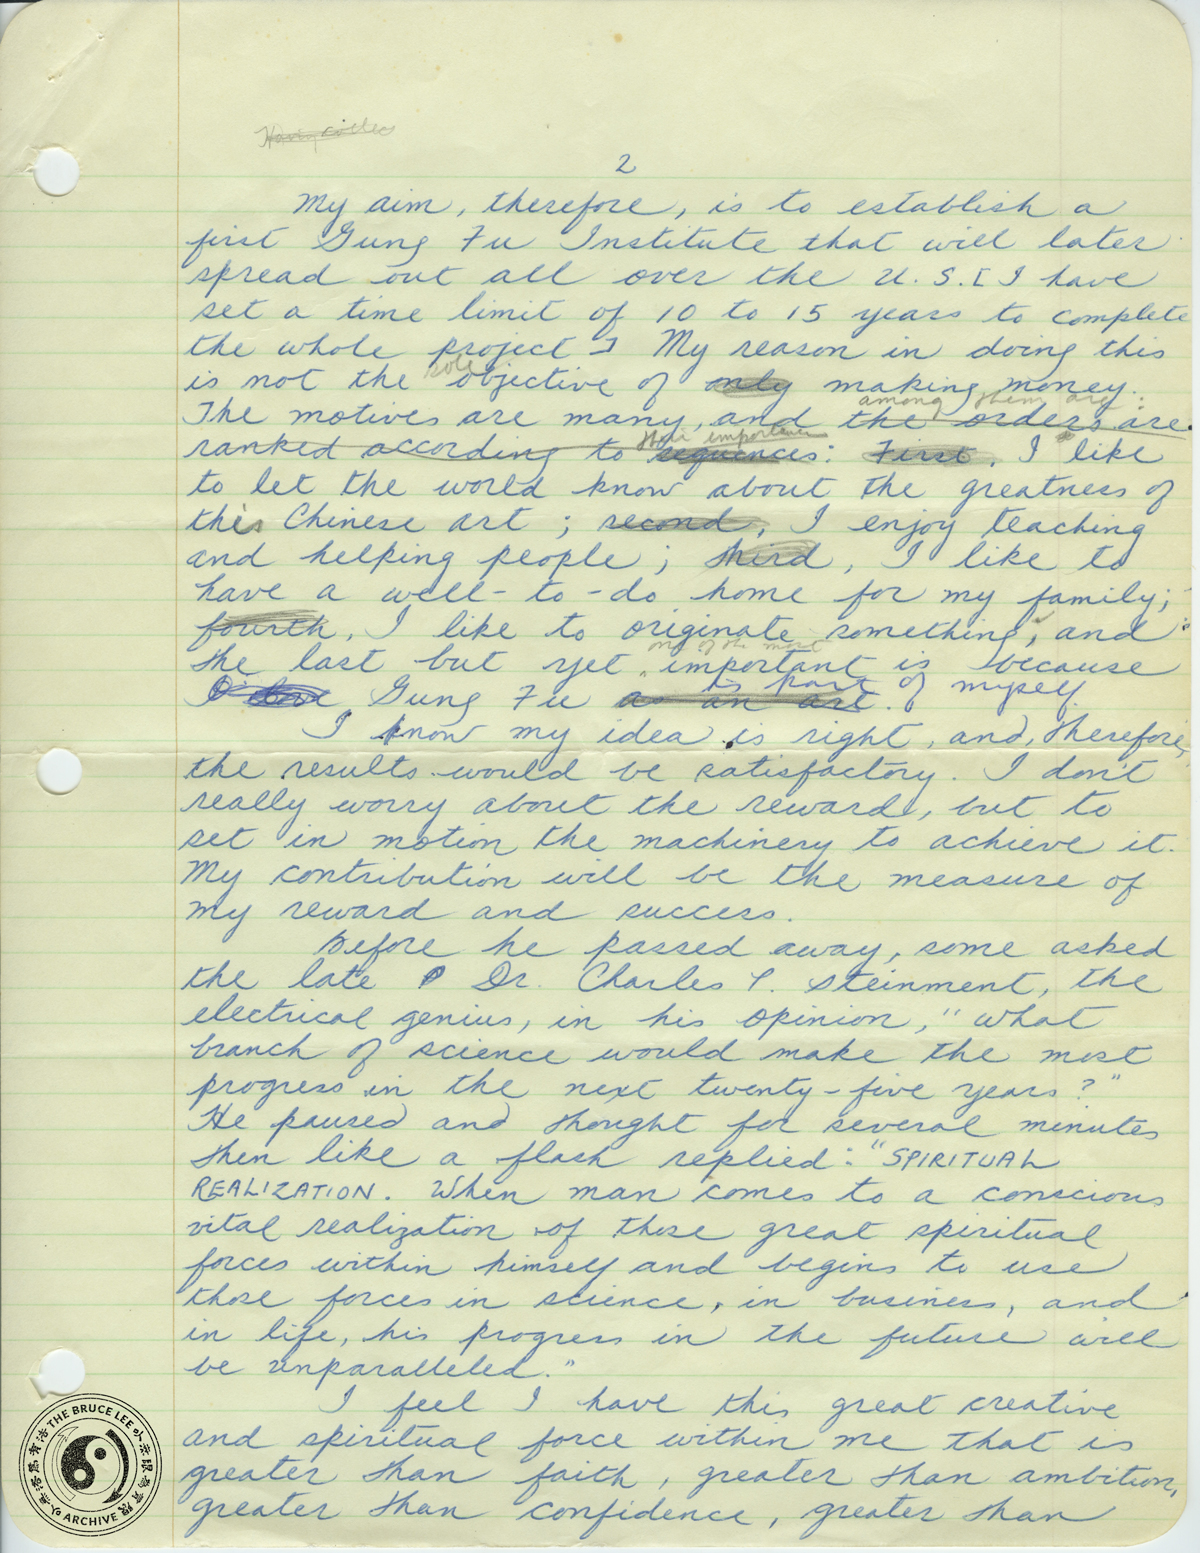 Letter-to-Pearl-draft-pg.2-archive.jpg